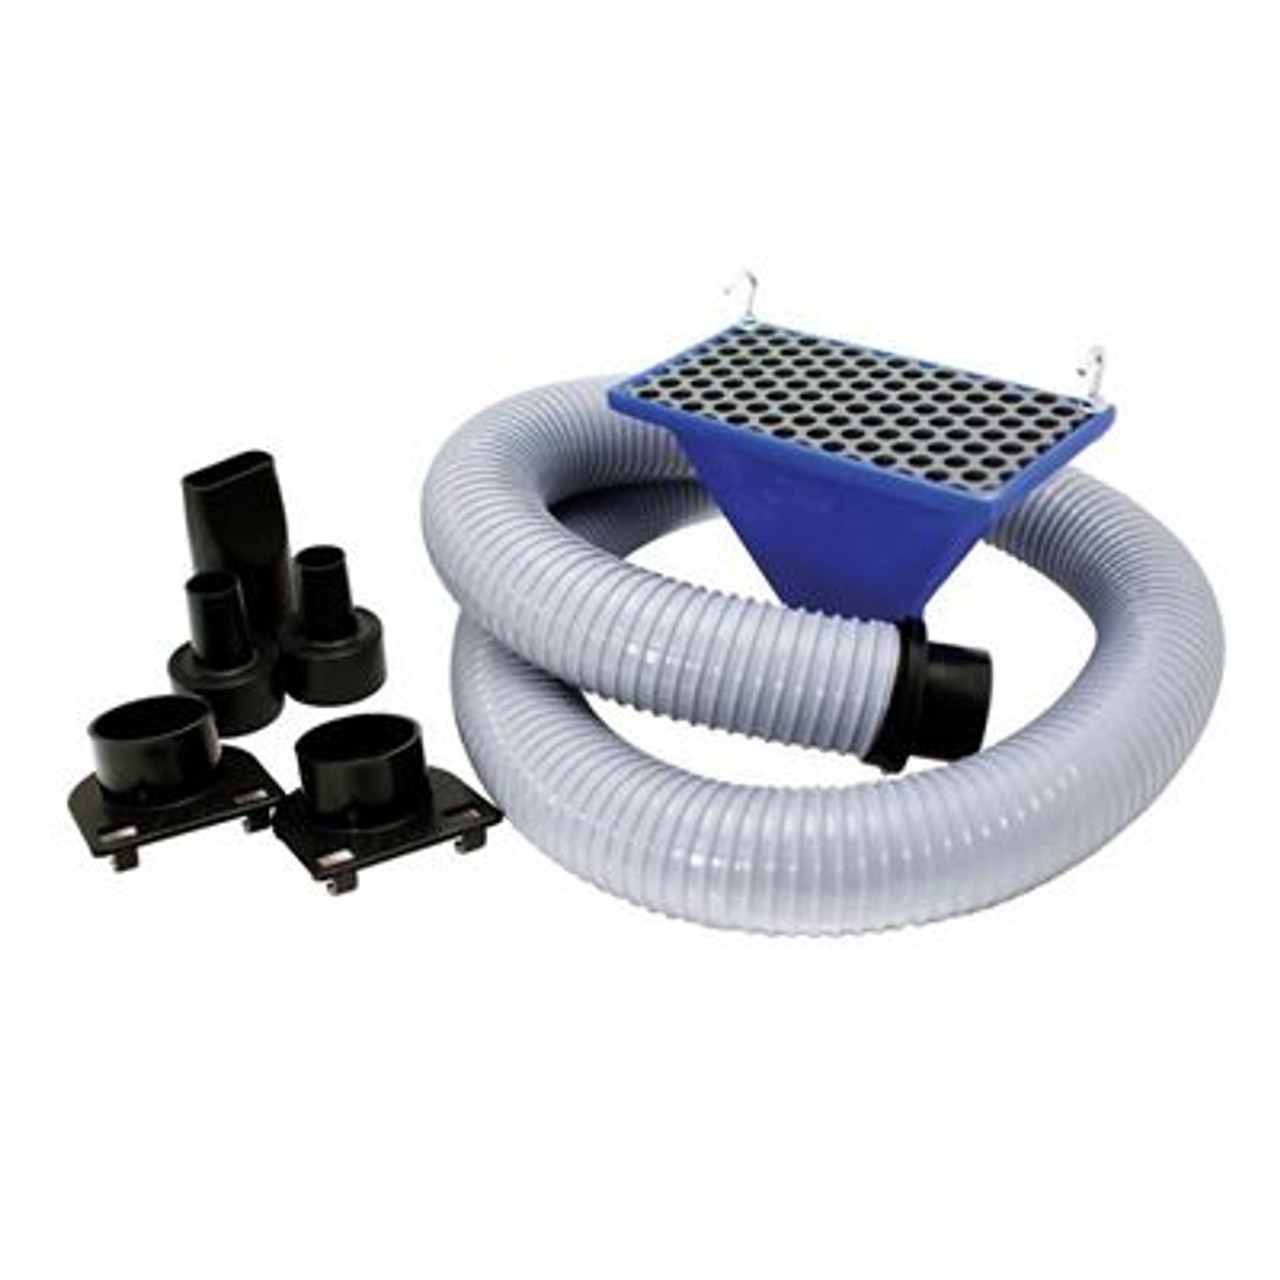 Double K 9000 II Stand Dryer Hose Kit